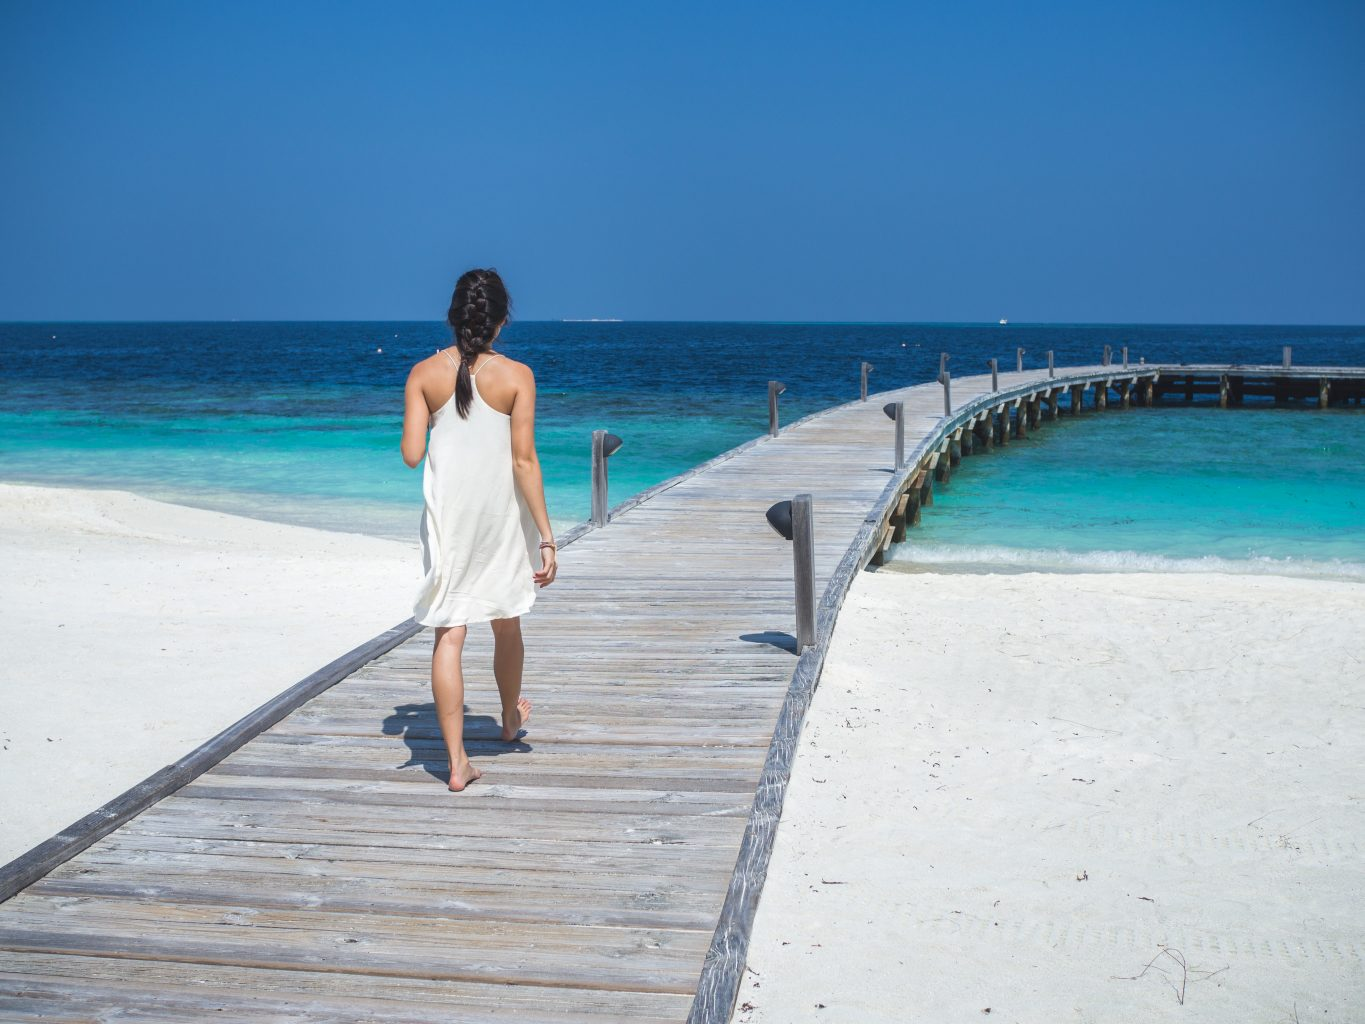 COMO-Cocoa-Island-boardwalk-jetty-girl maldives